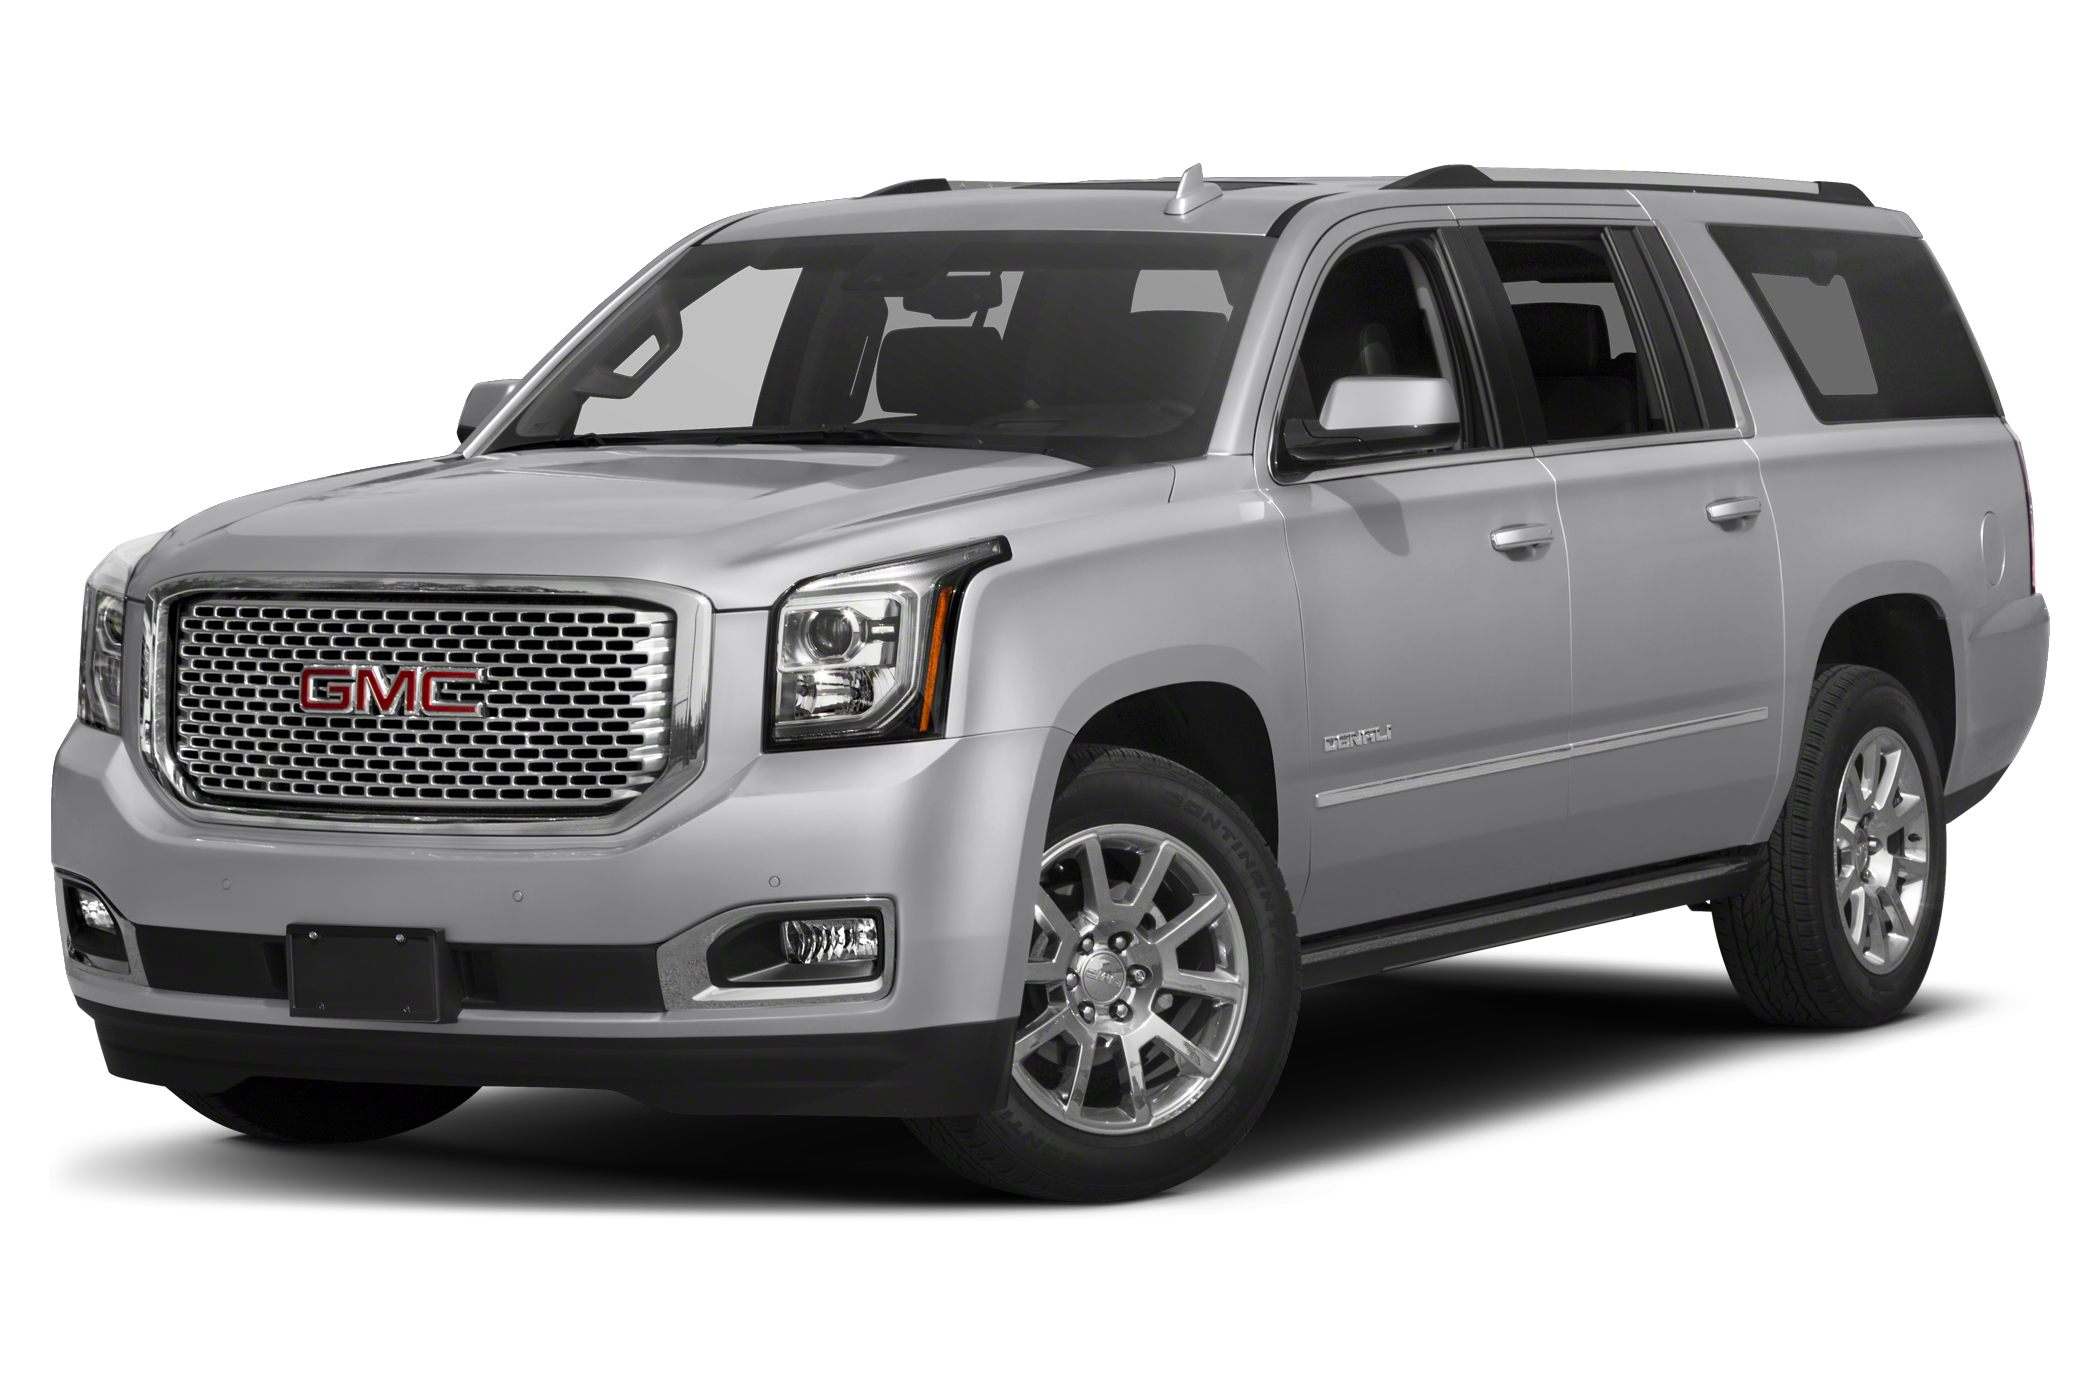 2017 Gmc Yukon Xl Denali 4x4 Specs And Prices